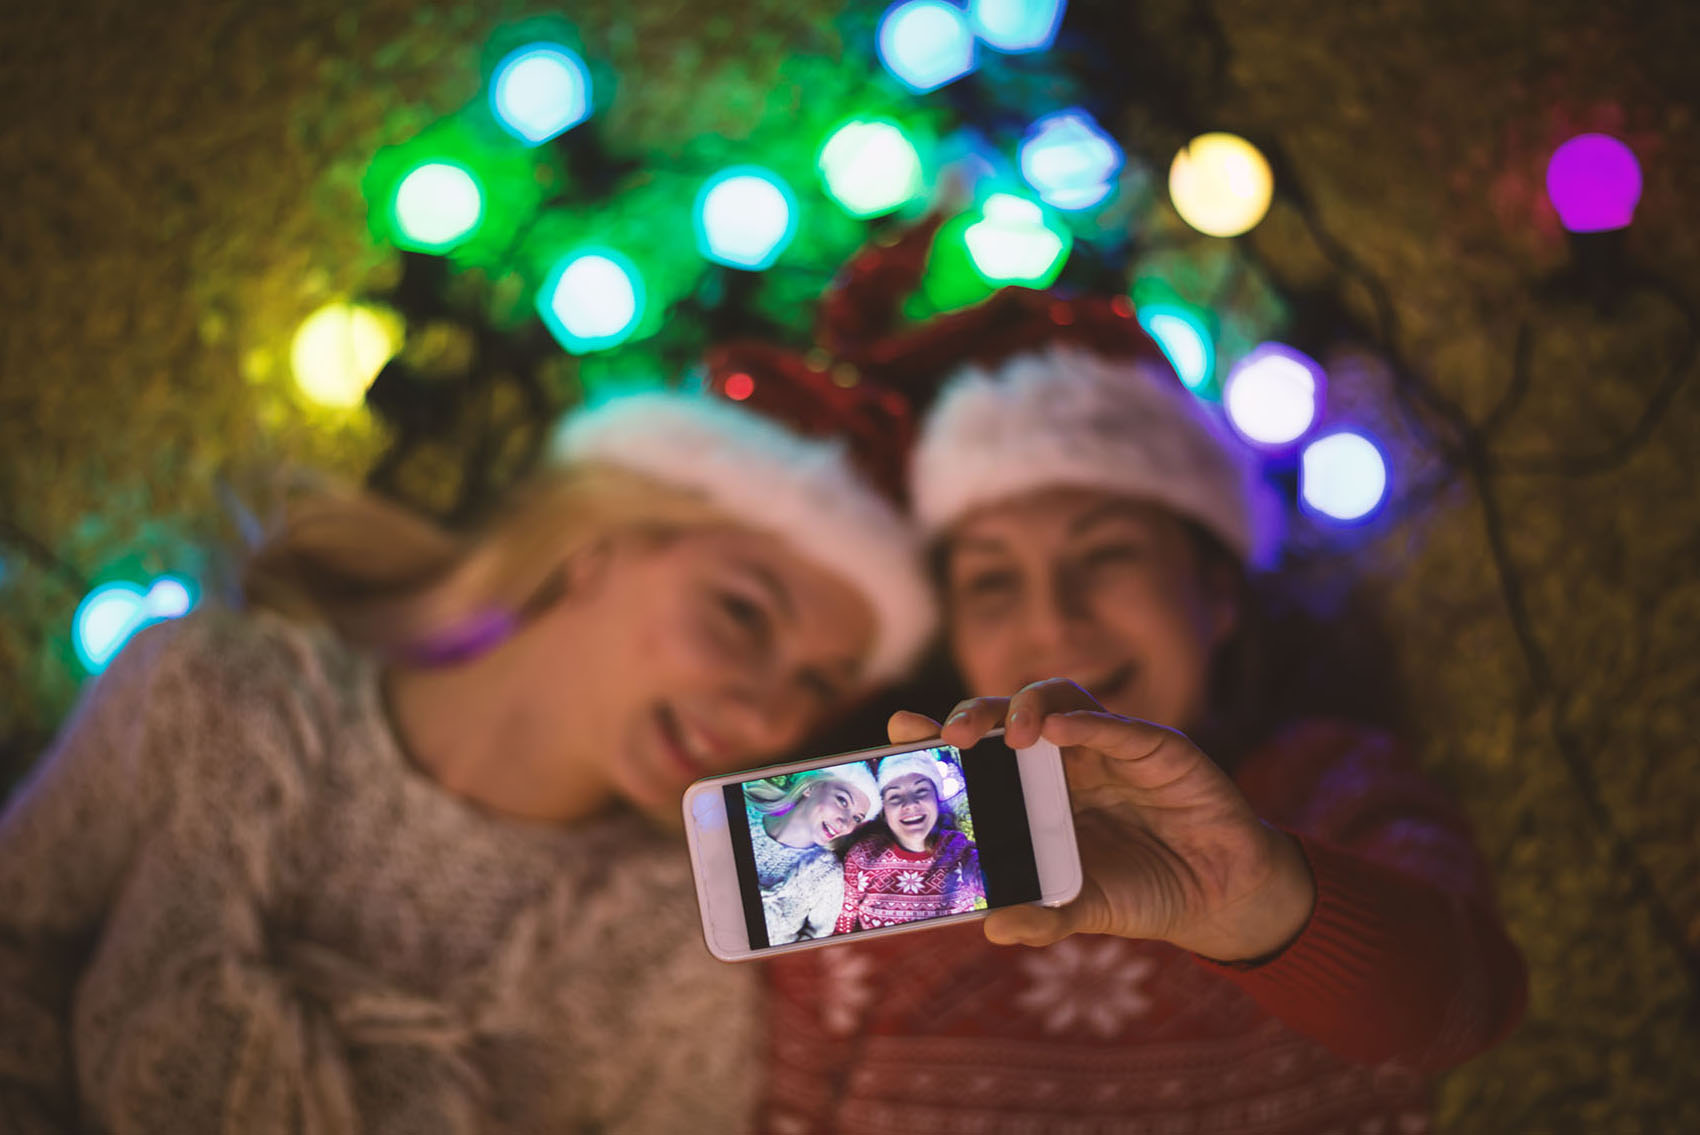 Two girls taking holiday selfie with smart phone against colored lights